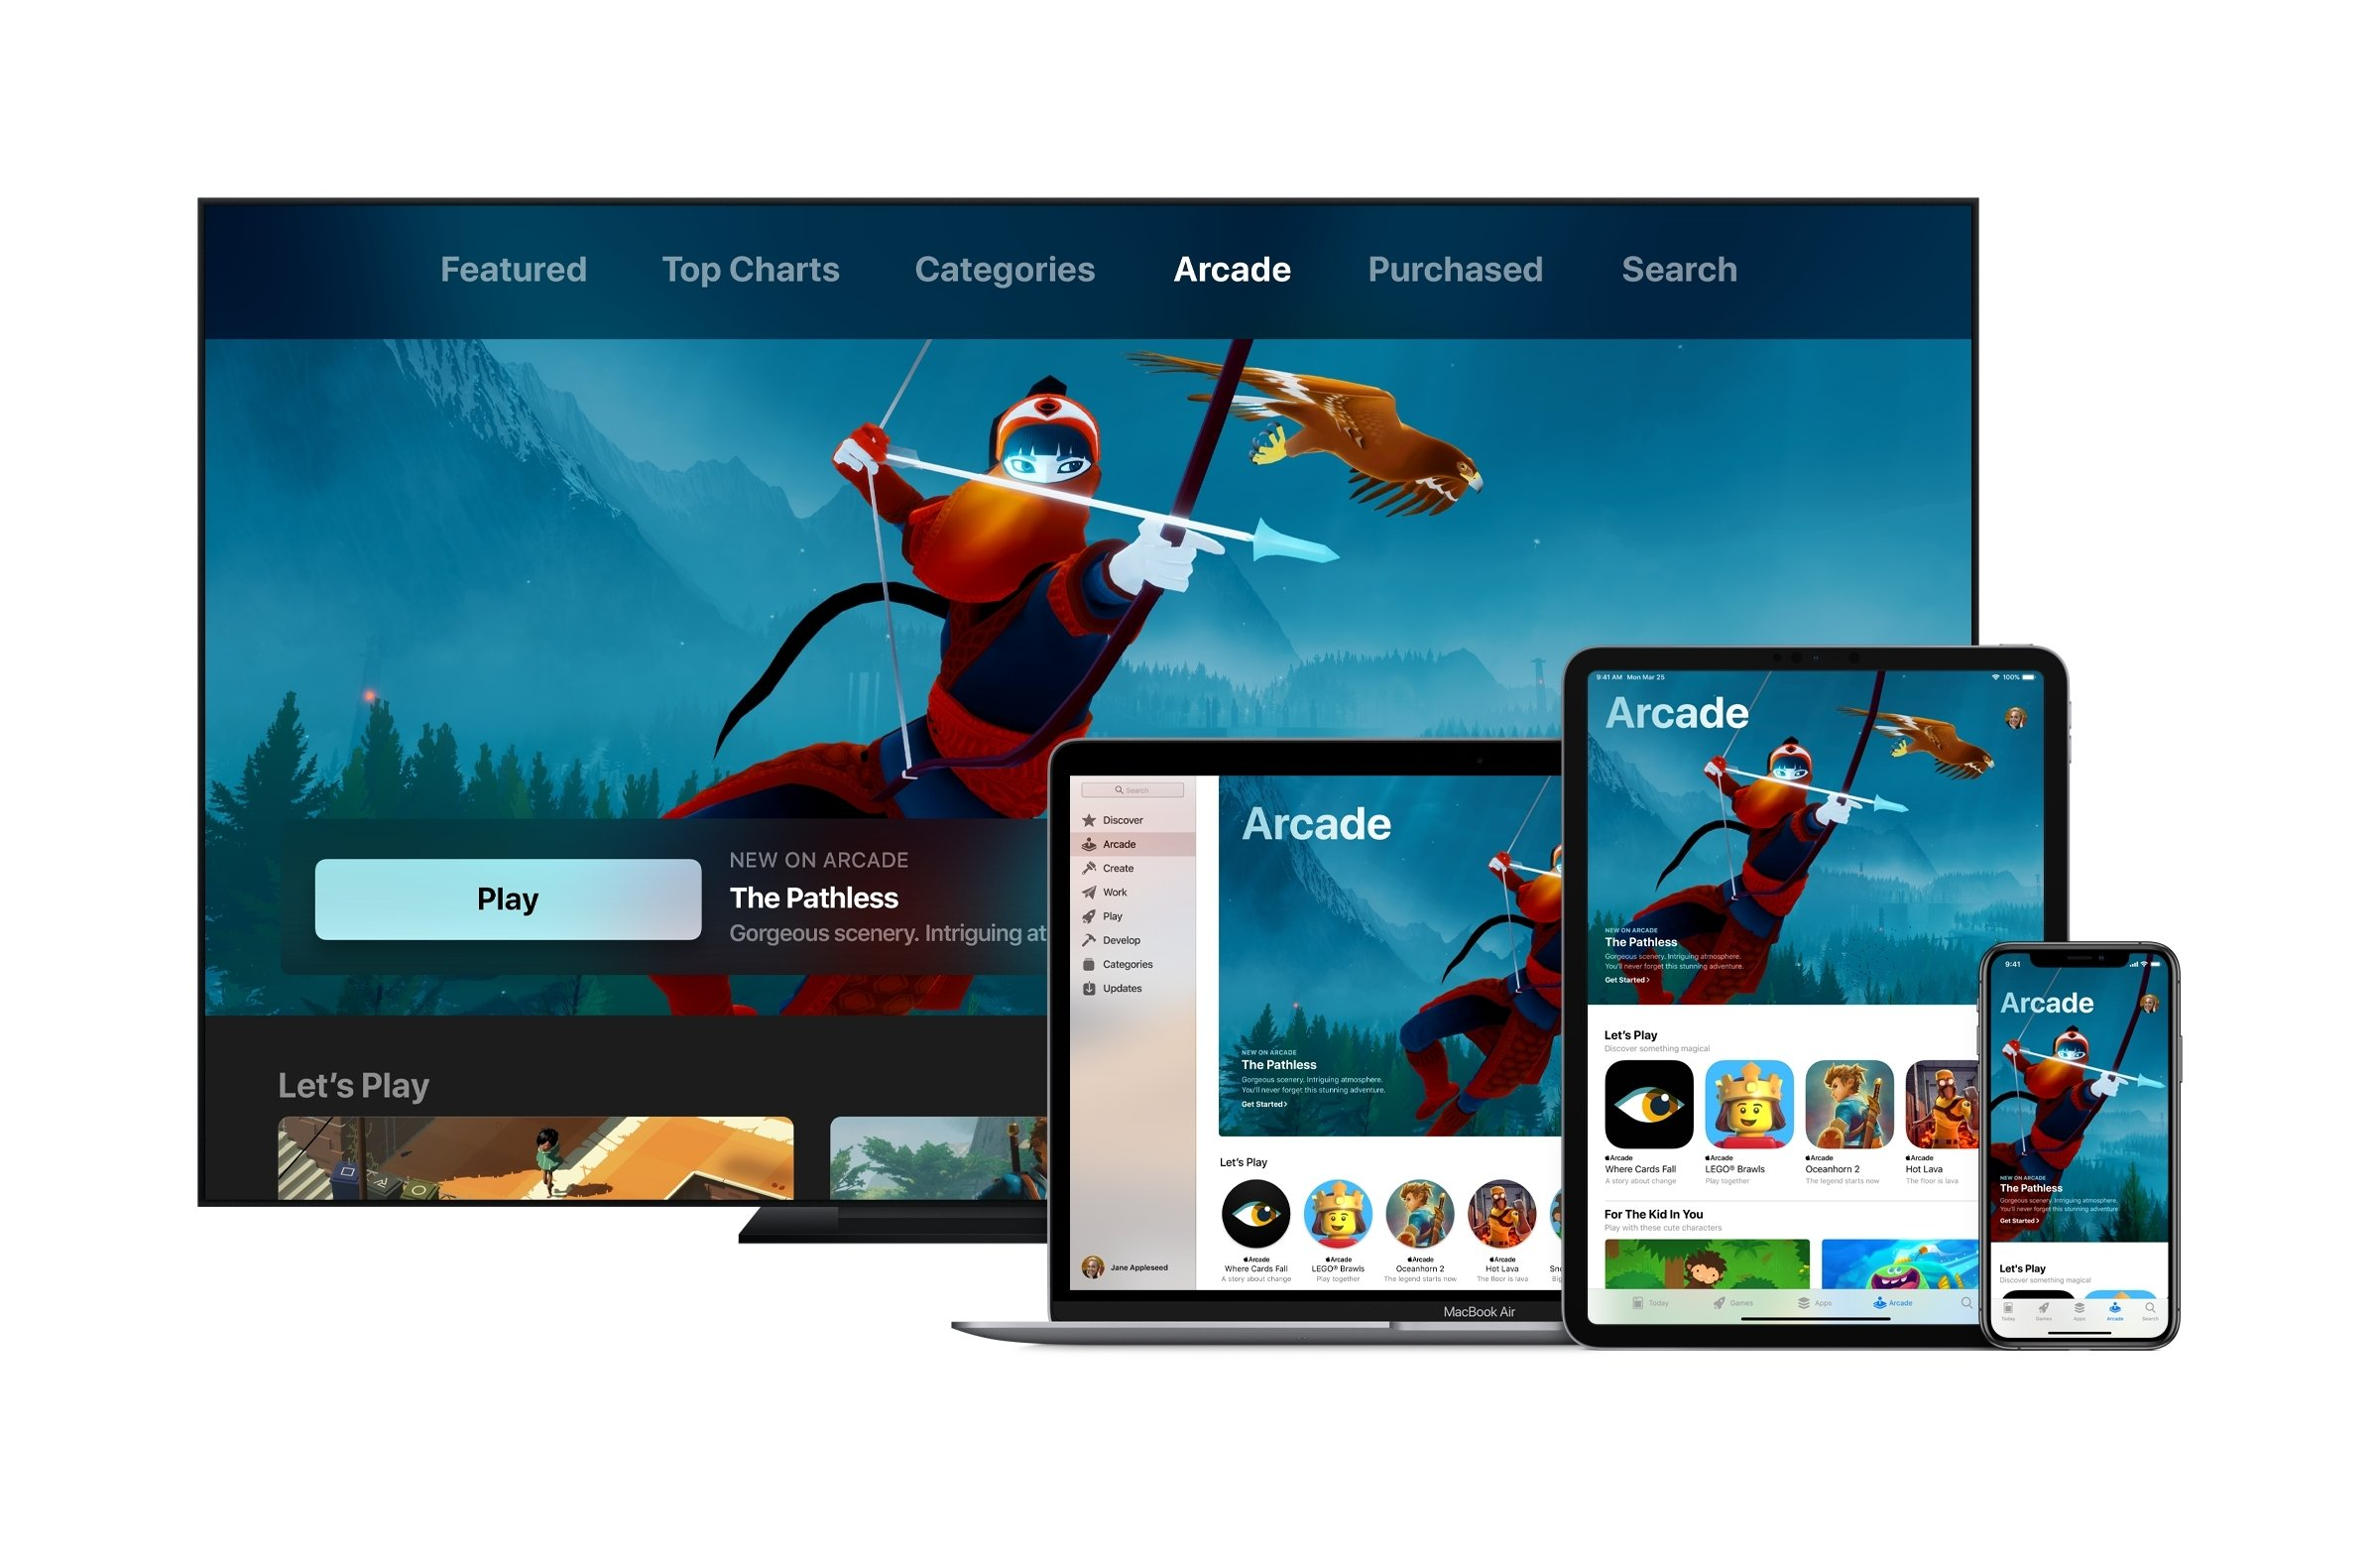 Apple Arcade is scheduled to launch in the Fall of 2019 and will offer over 100 different titles for gamers to enjoy. © Apple